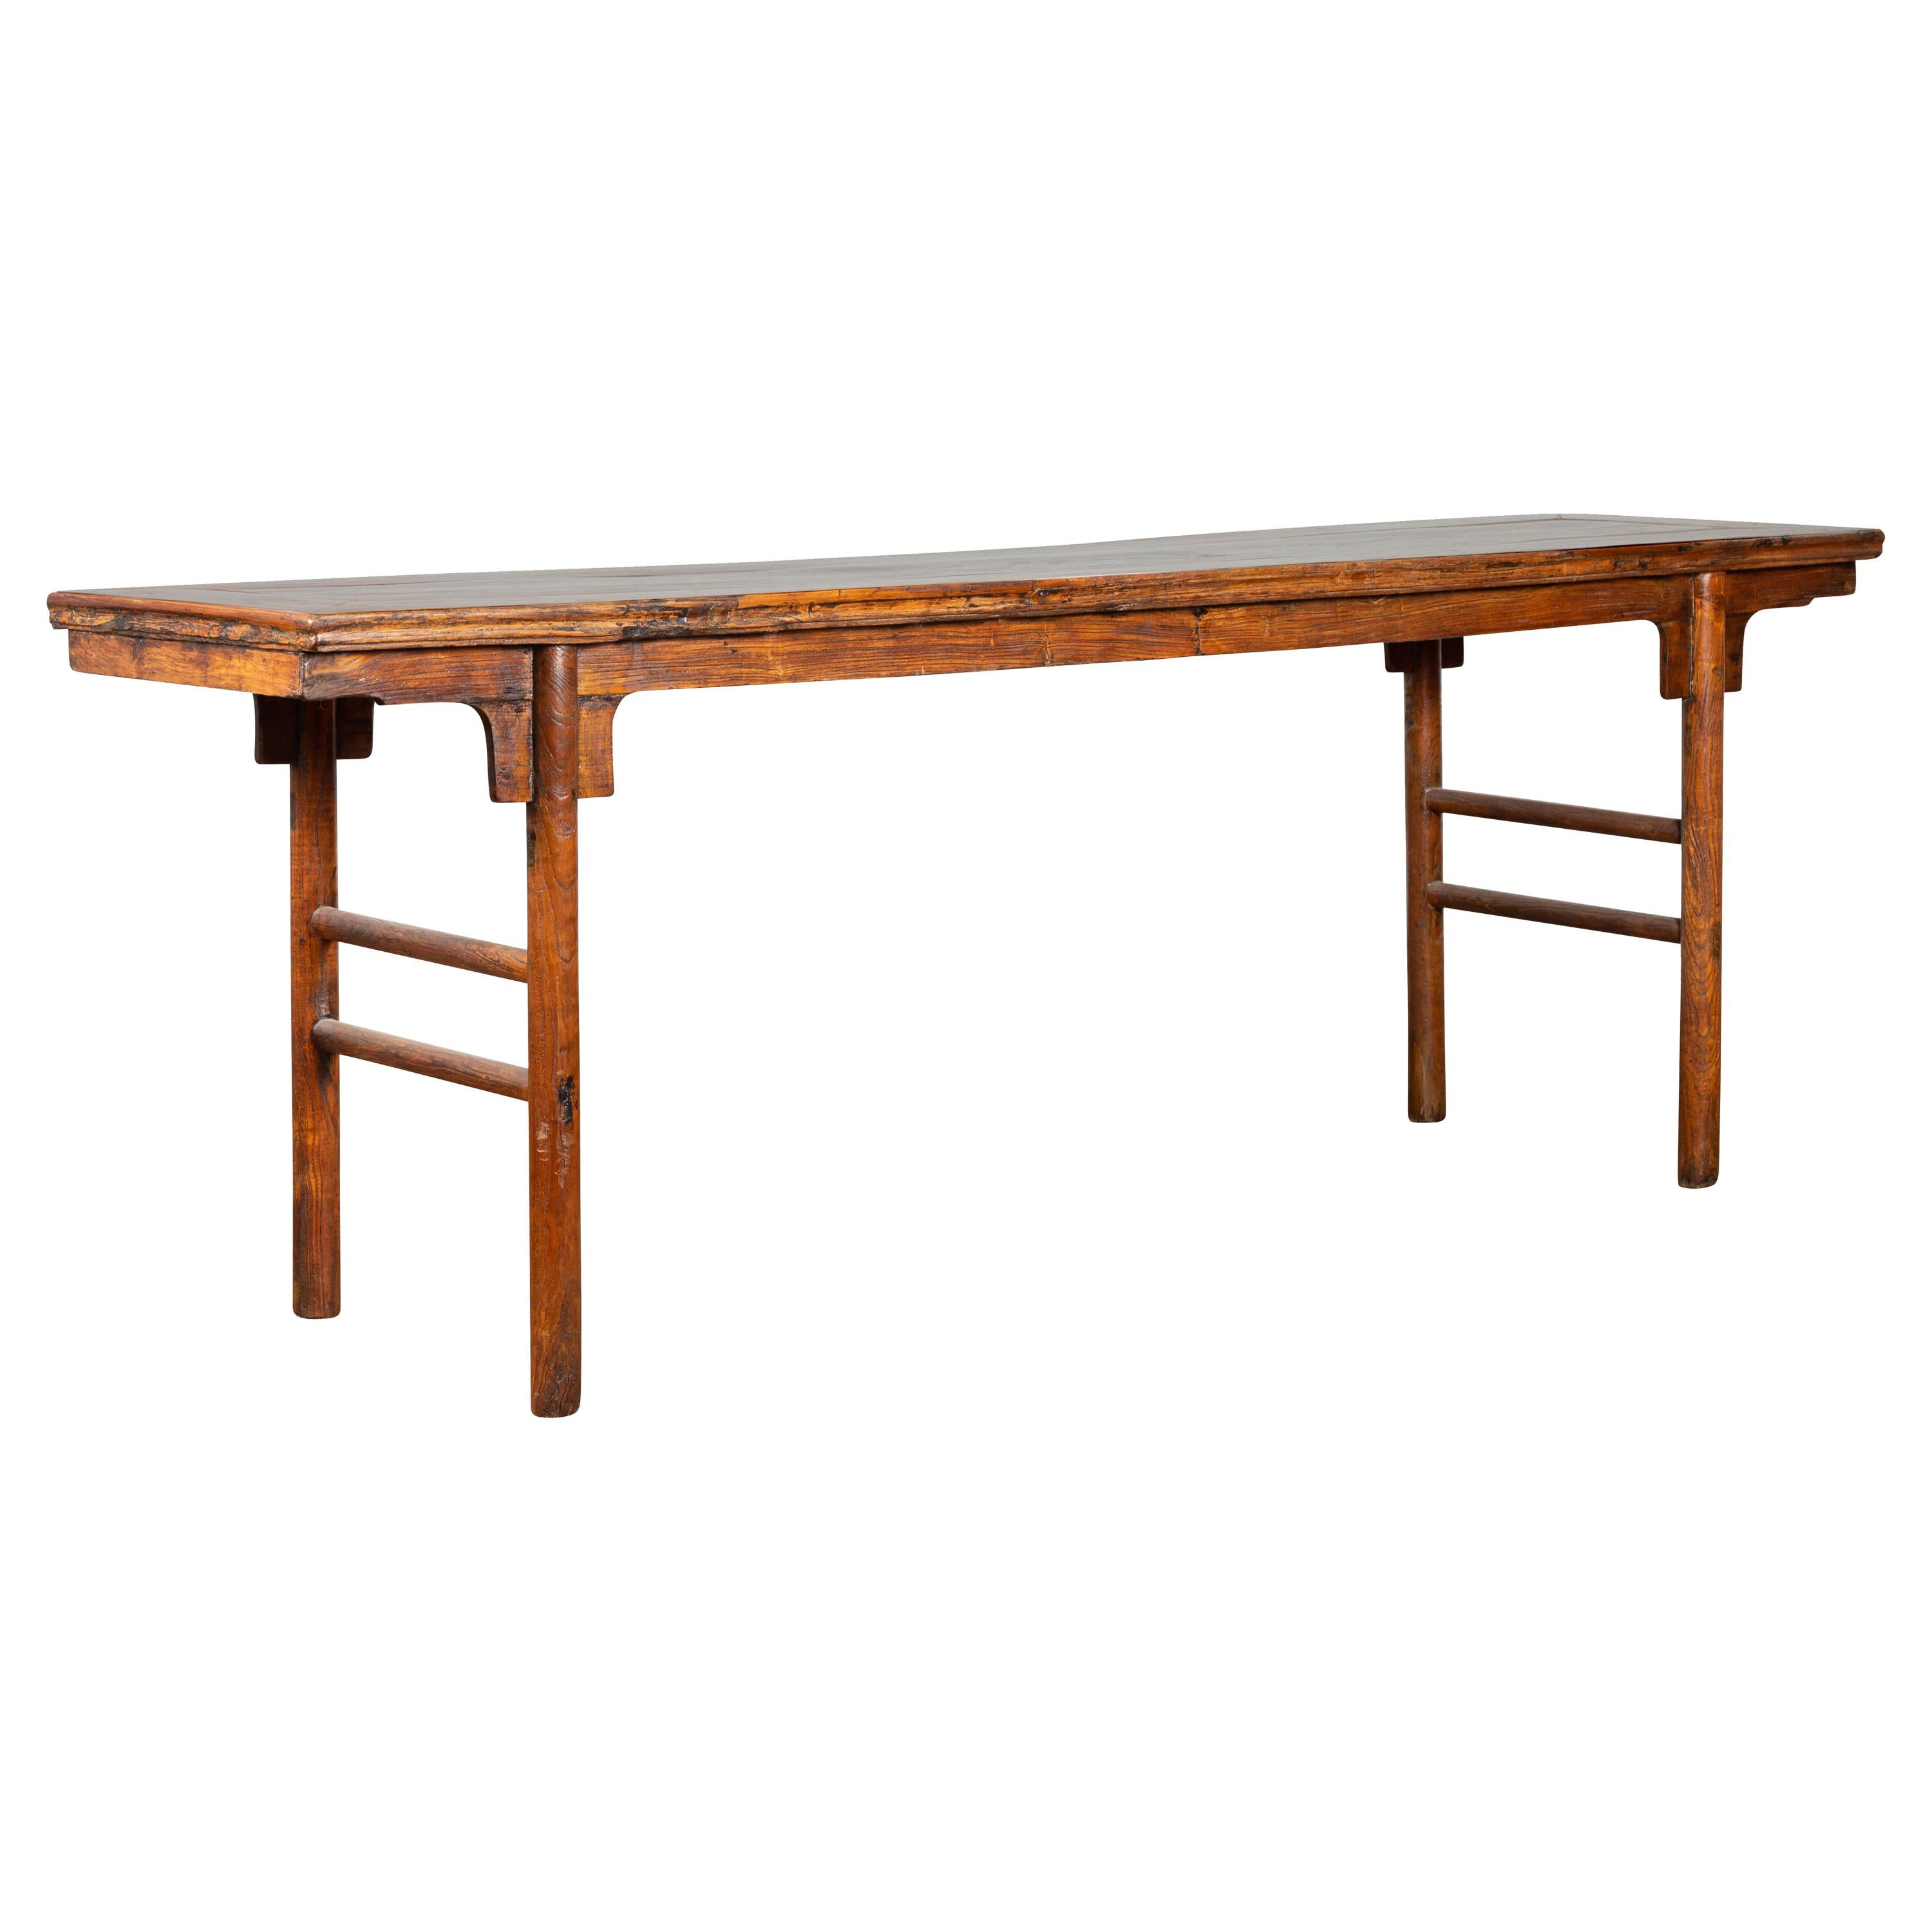 Chinese 19th Century Qing Dynasty Calligraphy Console Table with Carved Apron